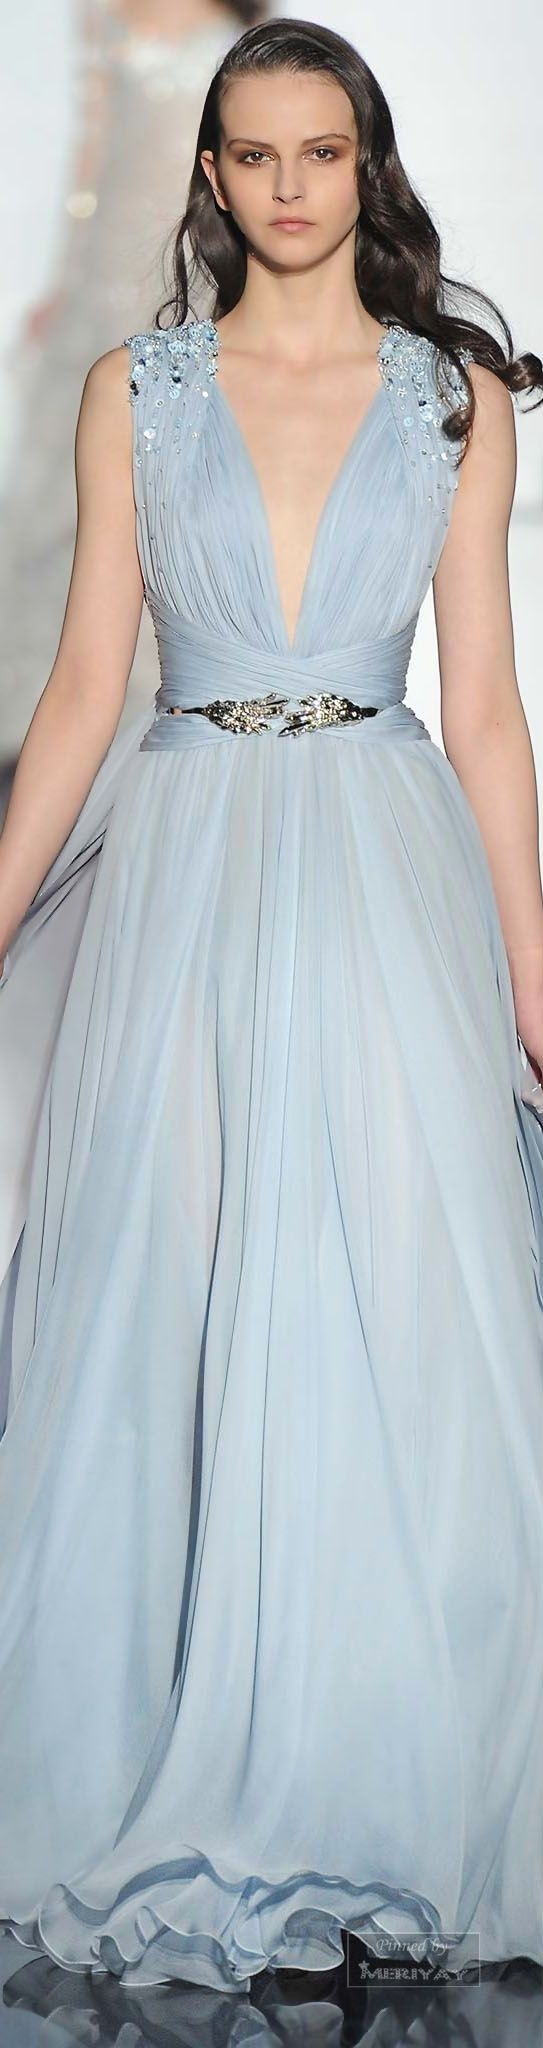 Zuhair Murad.Spring 2015 Couture. | Fashion High | Pinterest ...